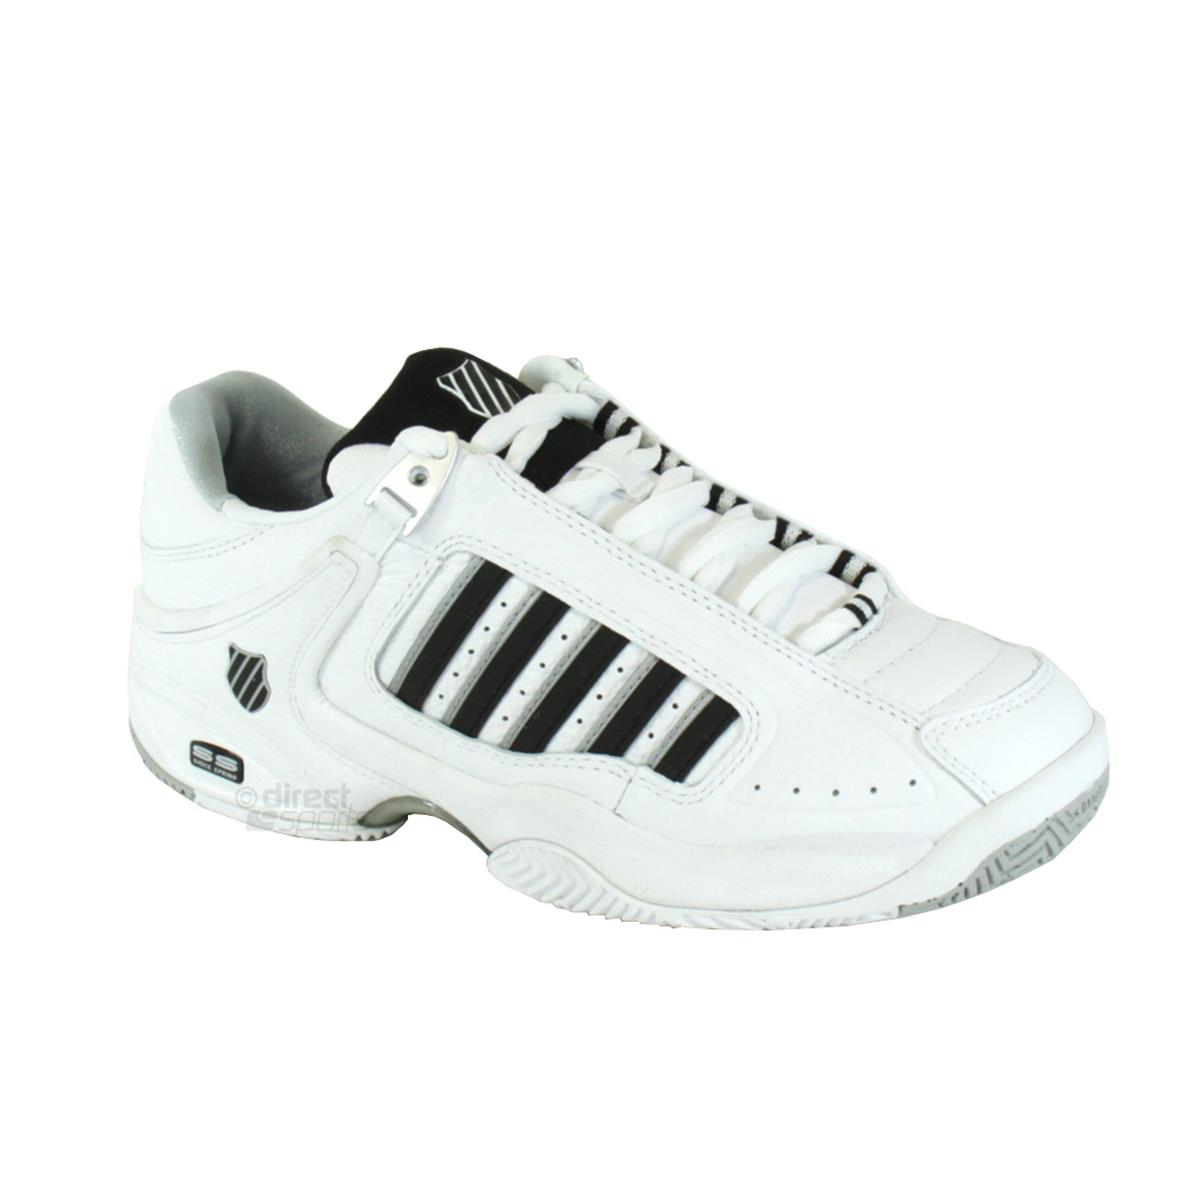 k swiss defier rs mens white black tennis shoes by